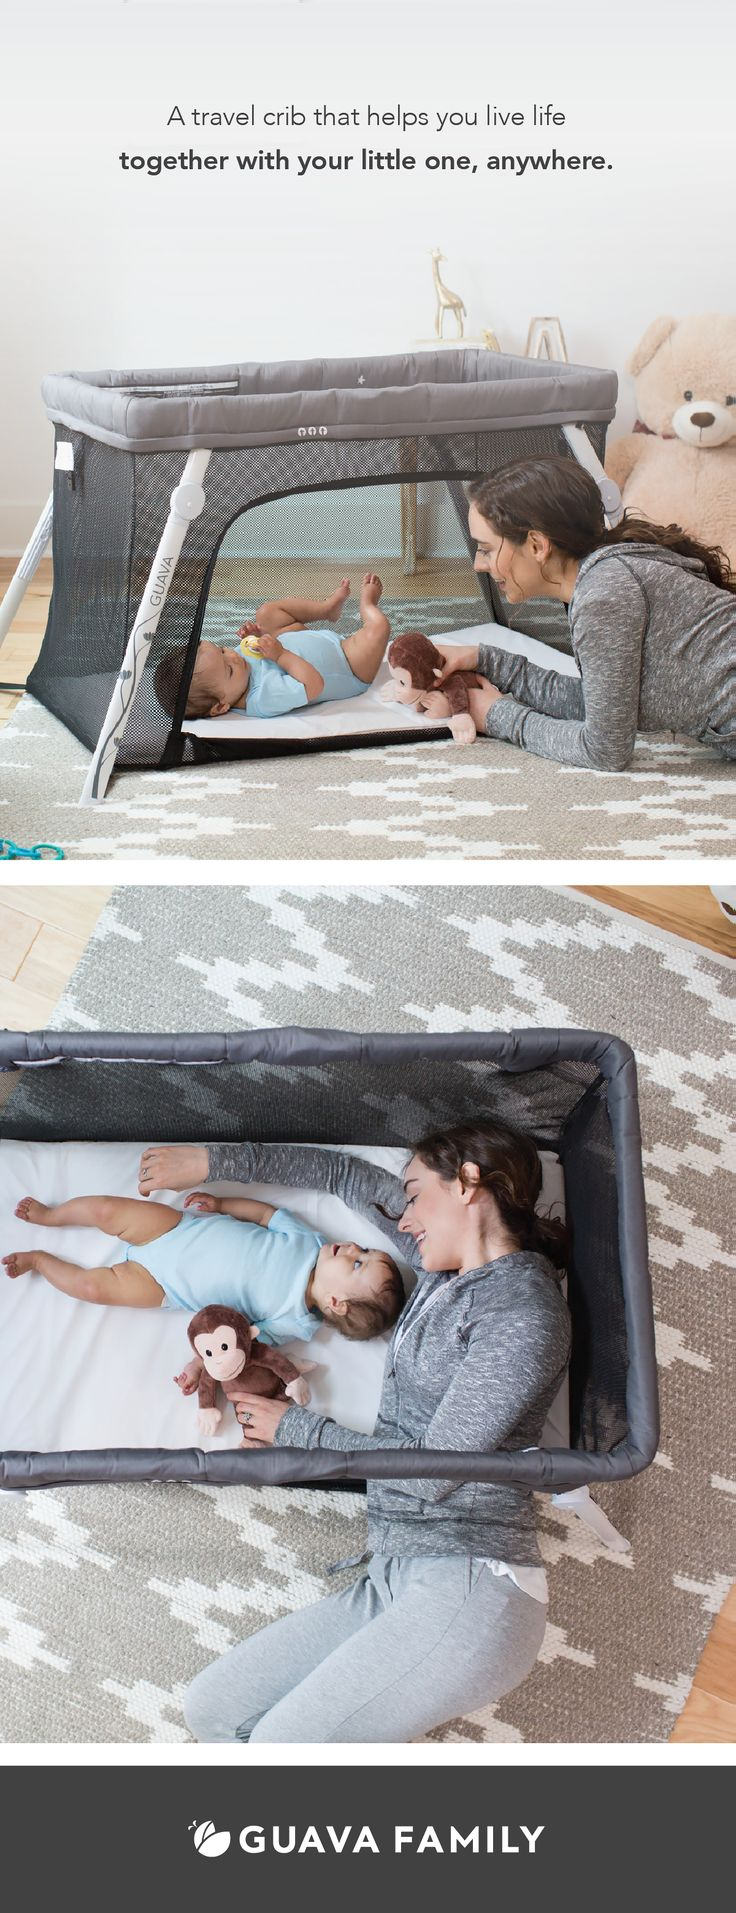 The Lotus Travel Crib is more than a travel crib. It's an everywhere crib. Ready to use on your next adventure, The Lotus Travel Crib packs easily into its included carry case that also turns into a backpack so you can take it anywhere while still carrying your baby and diaper bag.